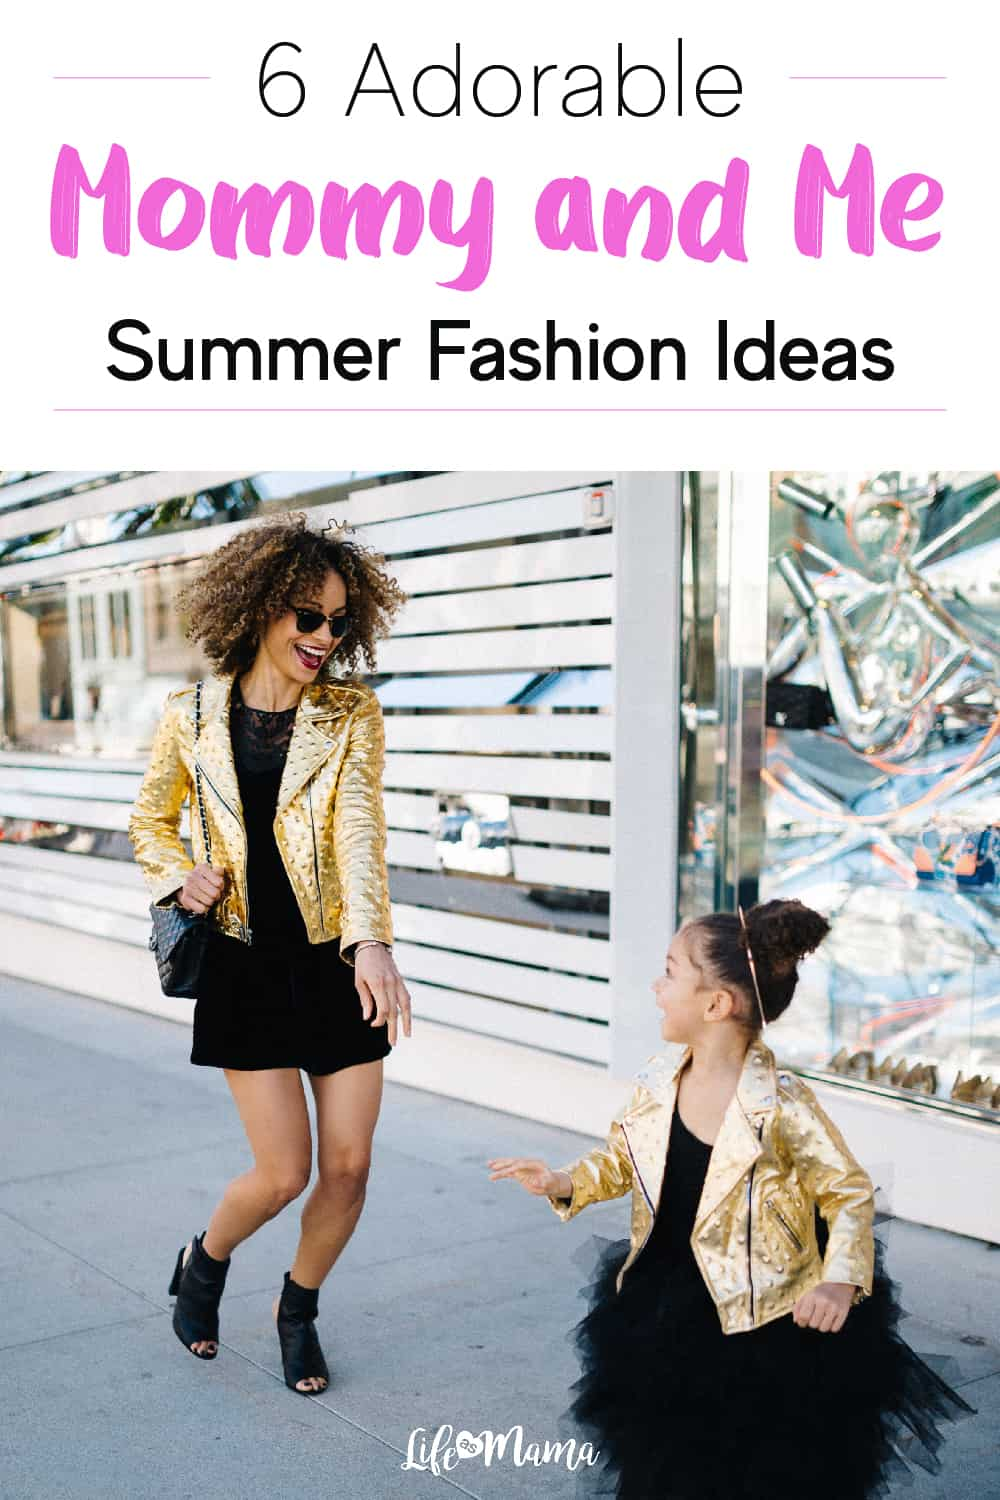 6 Adorable Mommy and Me Fashion Ideas For Summer